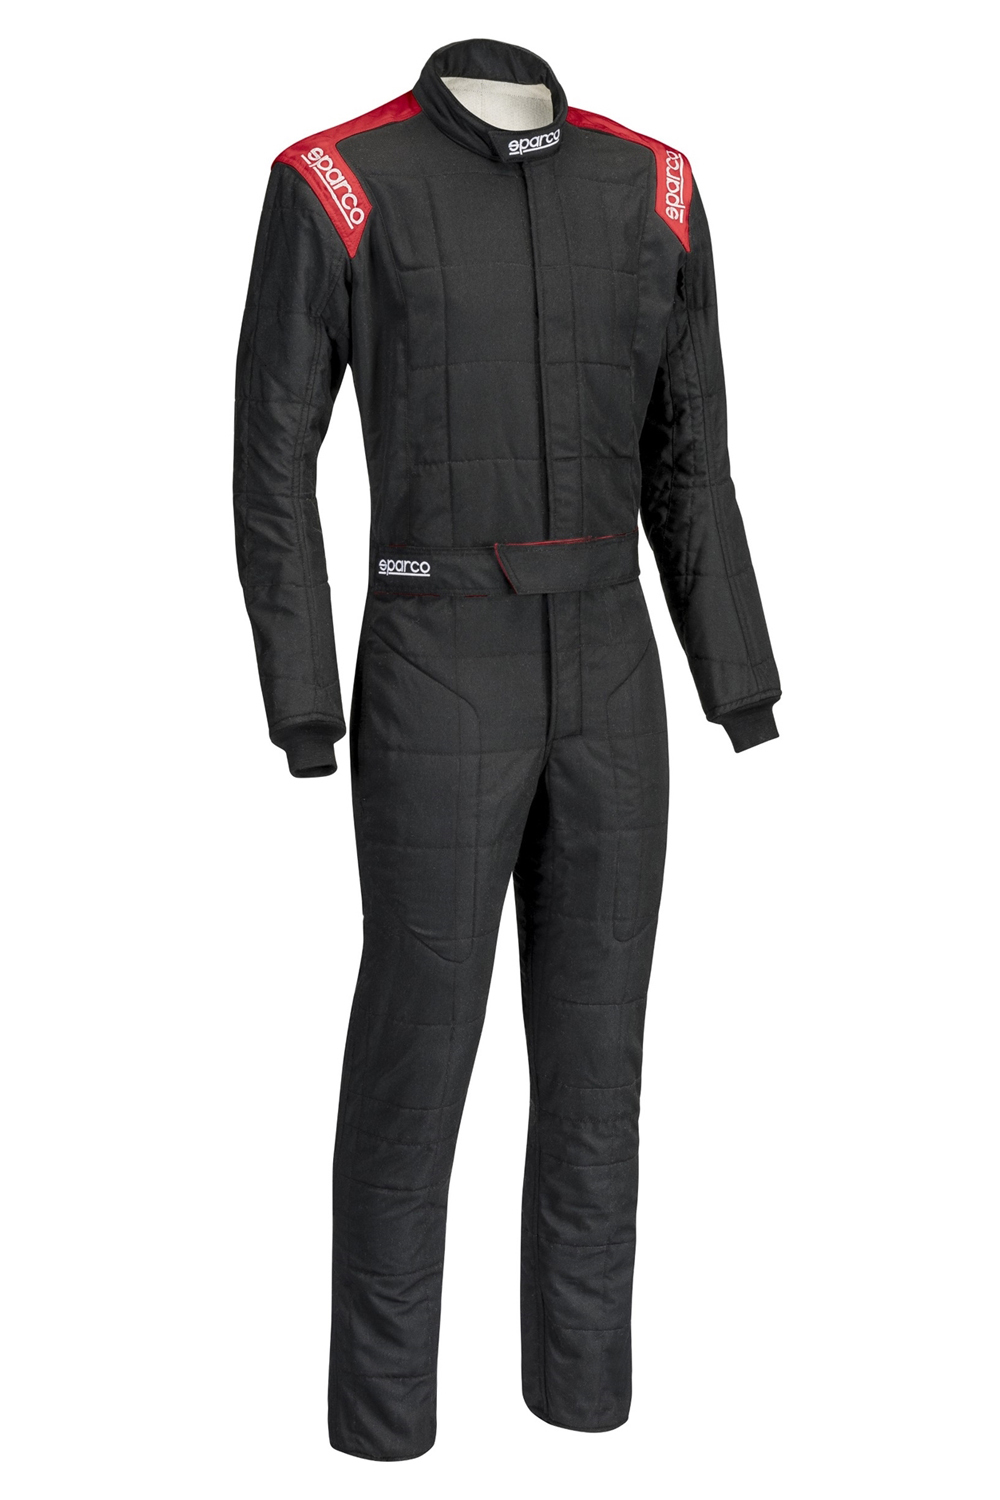 Sparco Suit Conquest Boot Cut Blk/Red X-Lrg / XX-Lrg